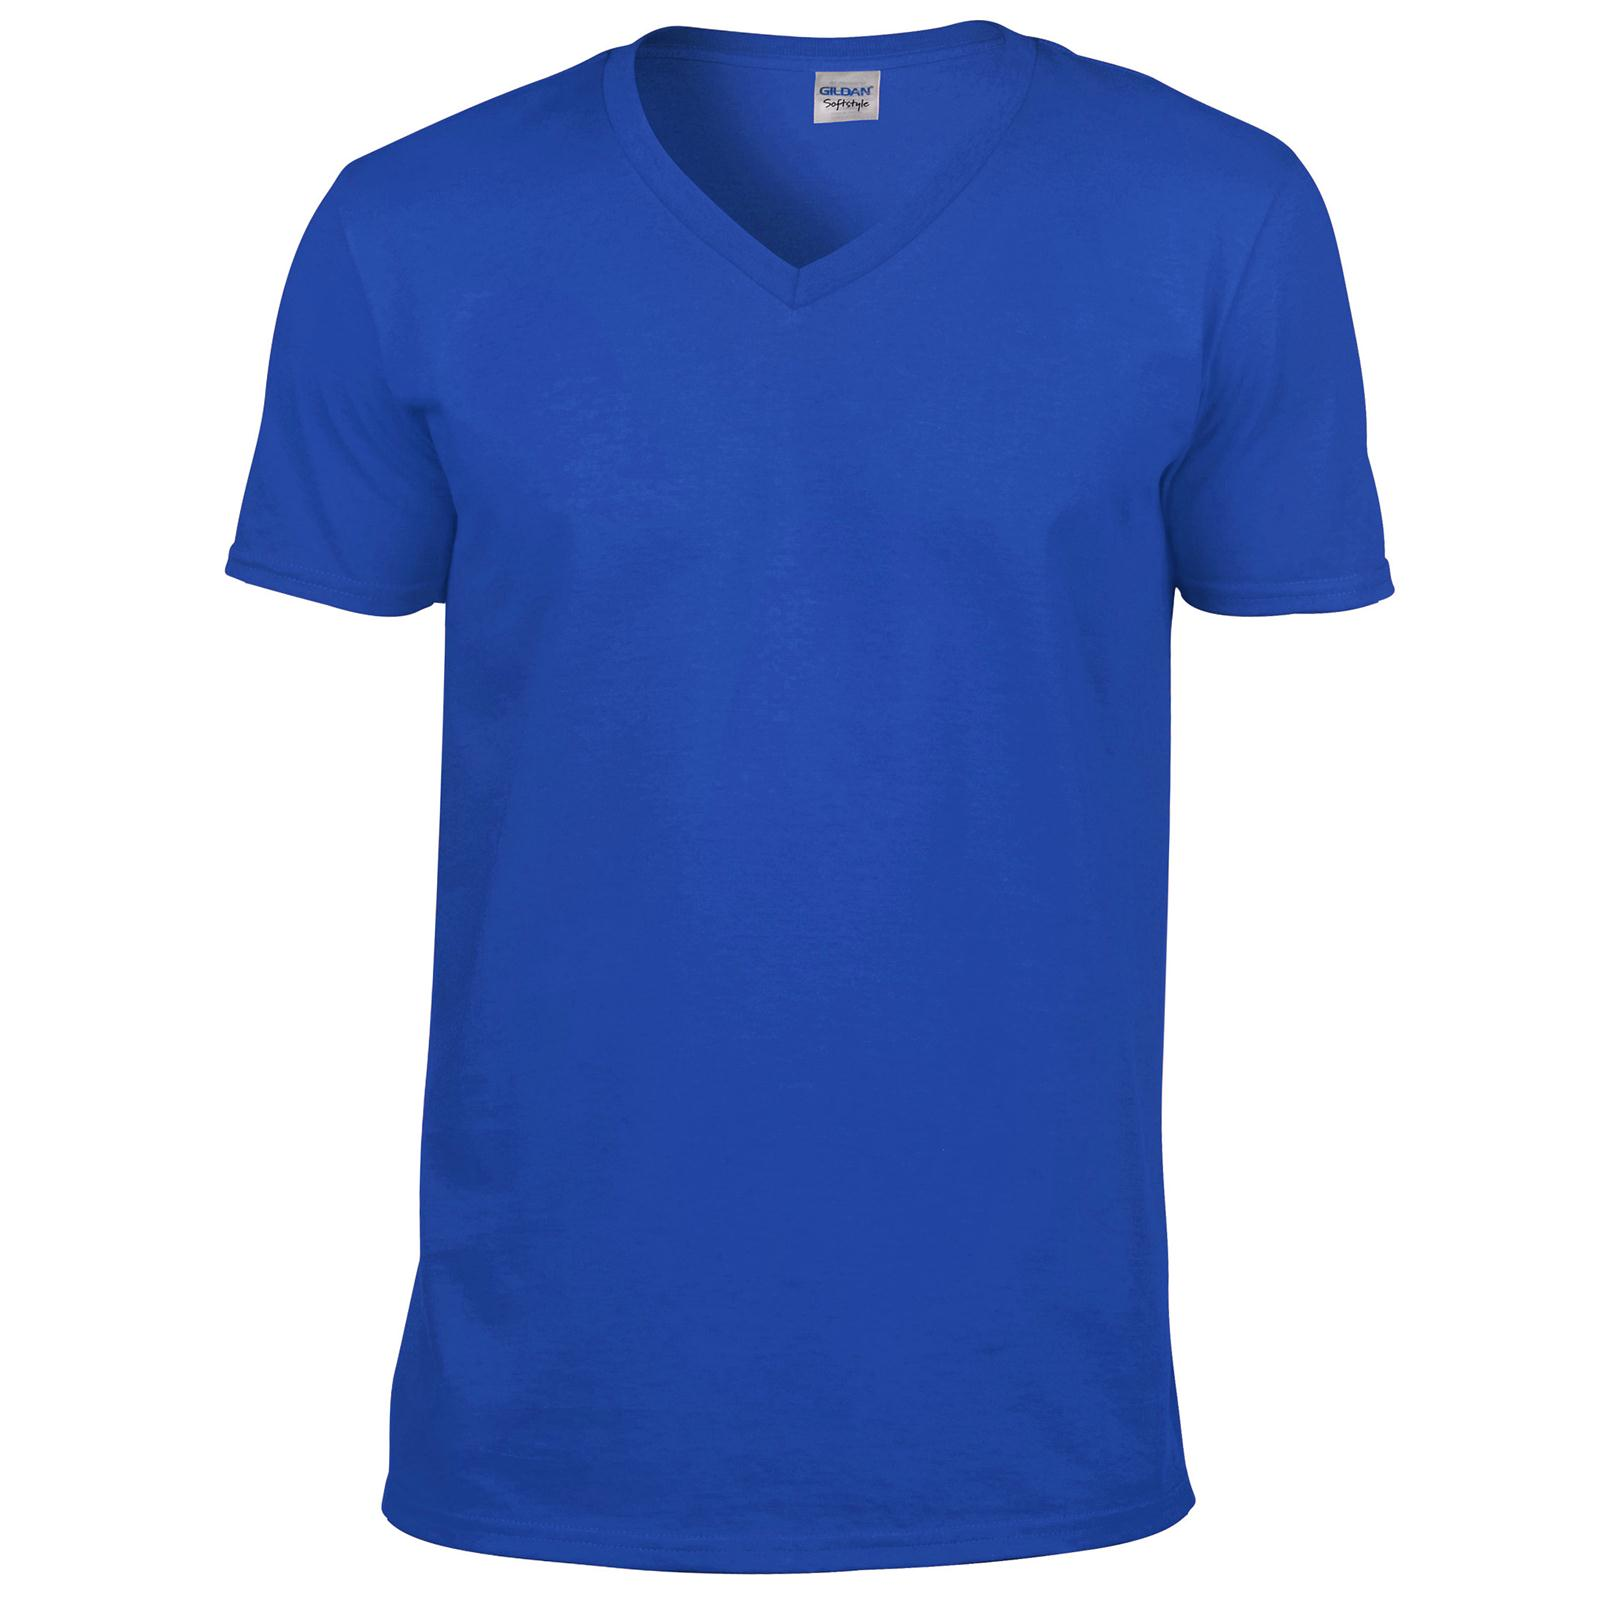 New gildan unisex adults soft style v neck t shirt in 6 for Gildan v neck t shirts for men